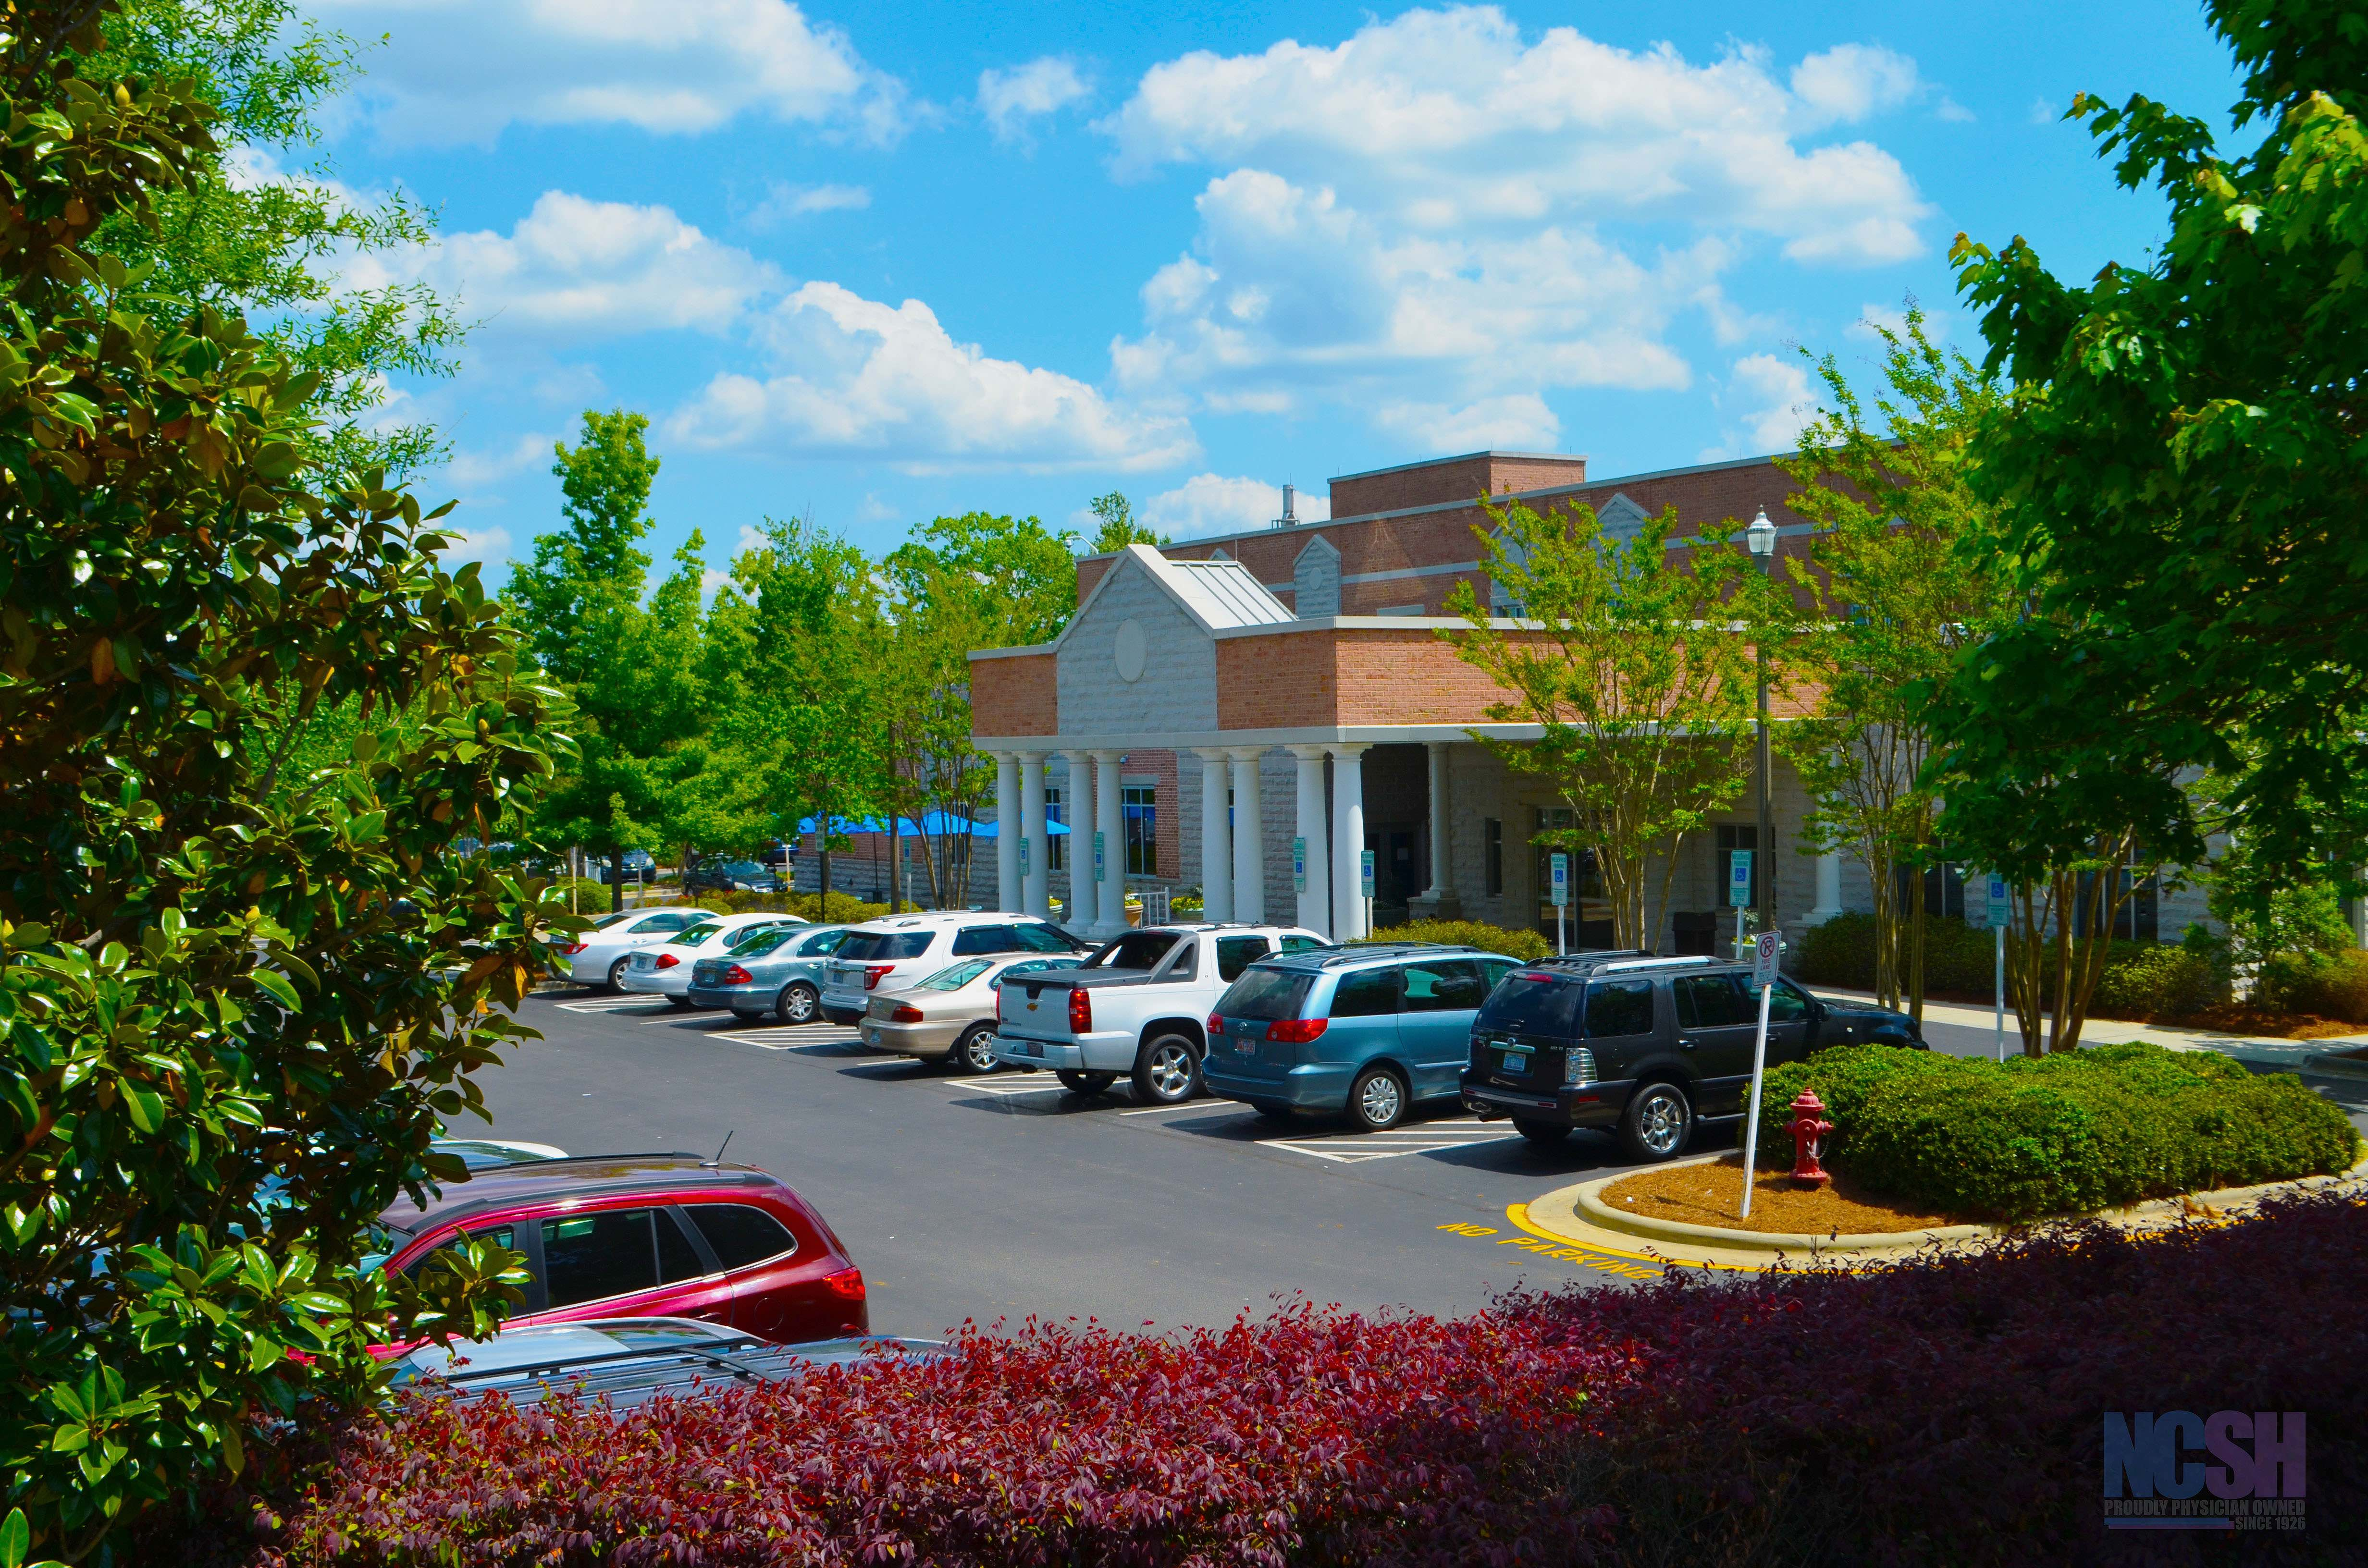 North Carolina Speciality Hospital